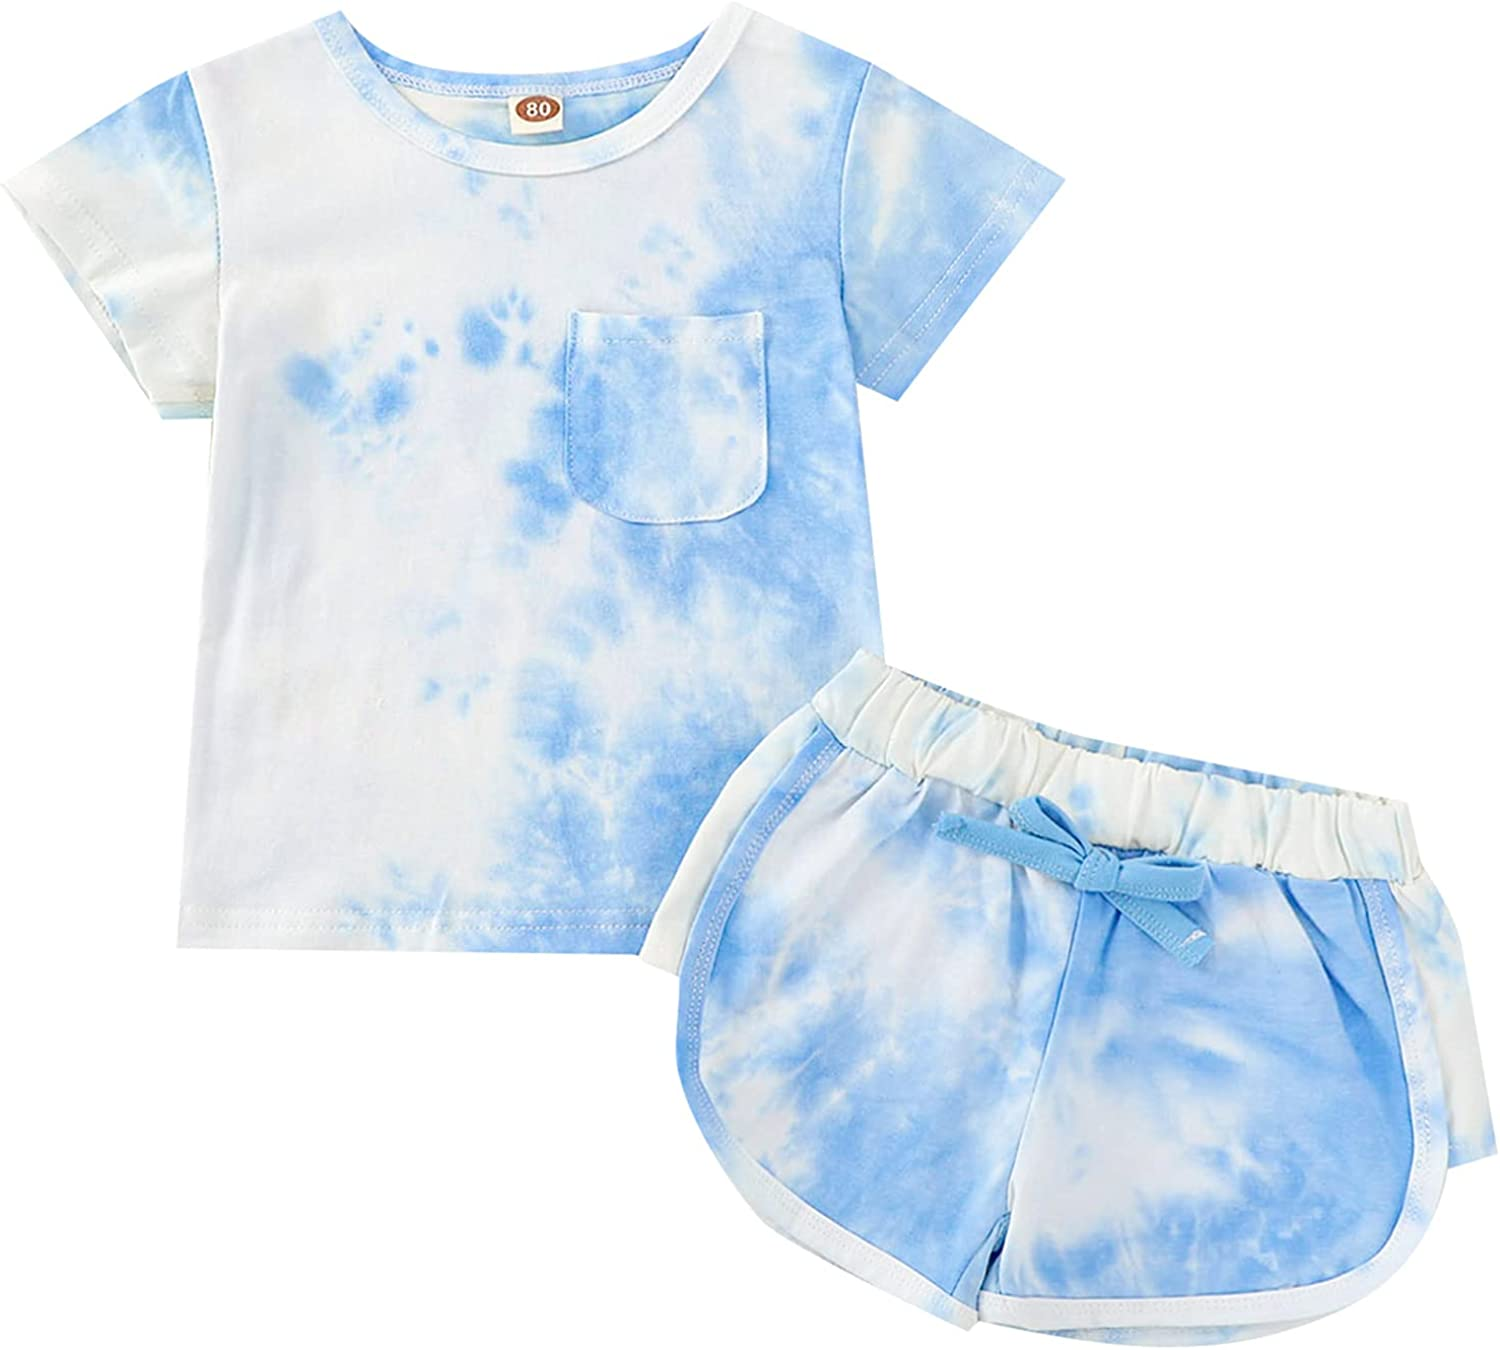 Toddler Baby Girl Boy Outfit Kids Tie-dye T-Shirt Short Sleeve Tops Shorts Suit Outfit 2Pcs Summer Clothes Set